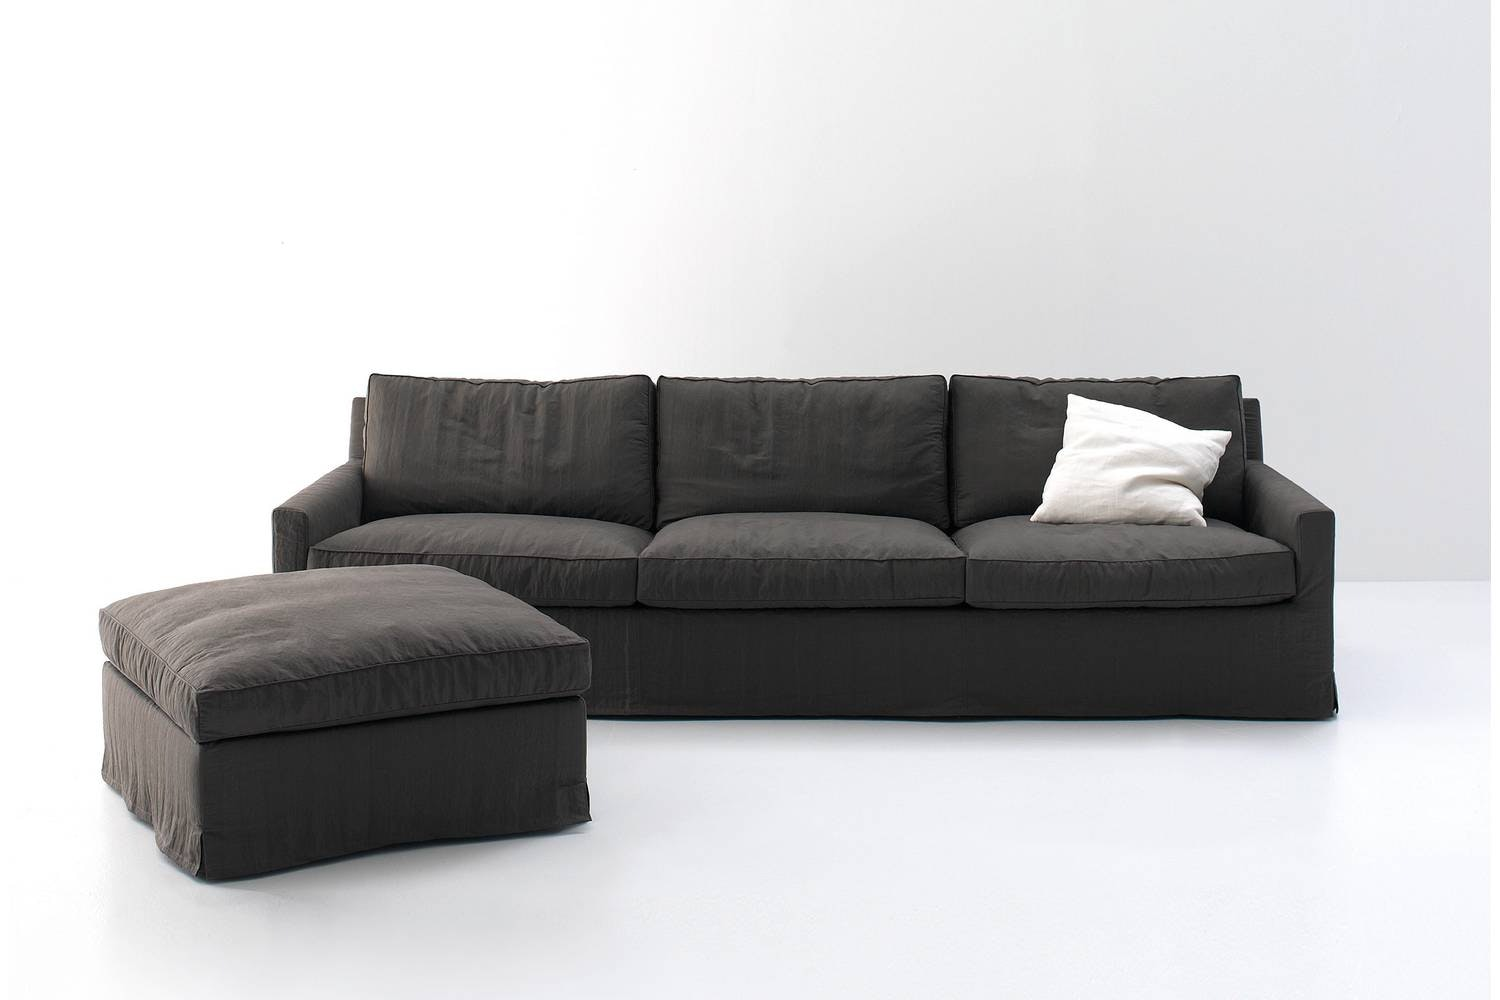 Cousy Ottoman by Vincent Van Duysen for Arflex